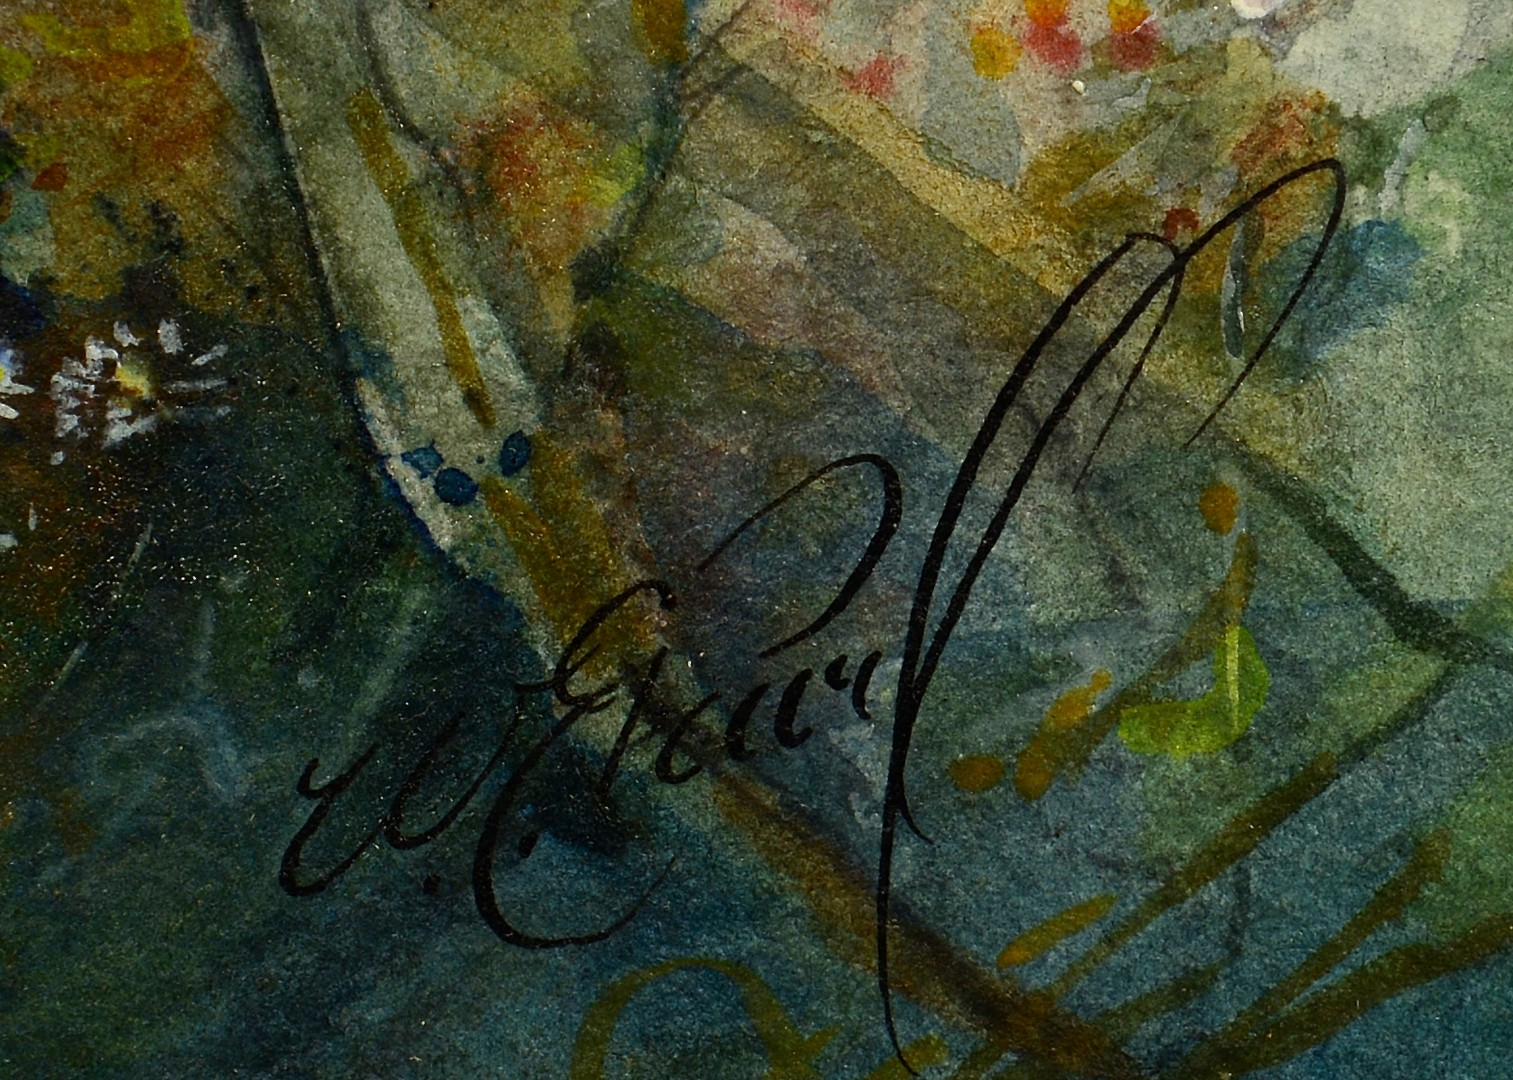 Lot 4010222: 2 Watercolors: Thornton and Pearl